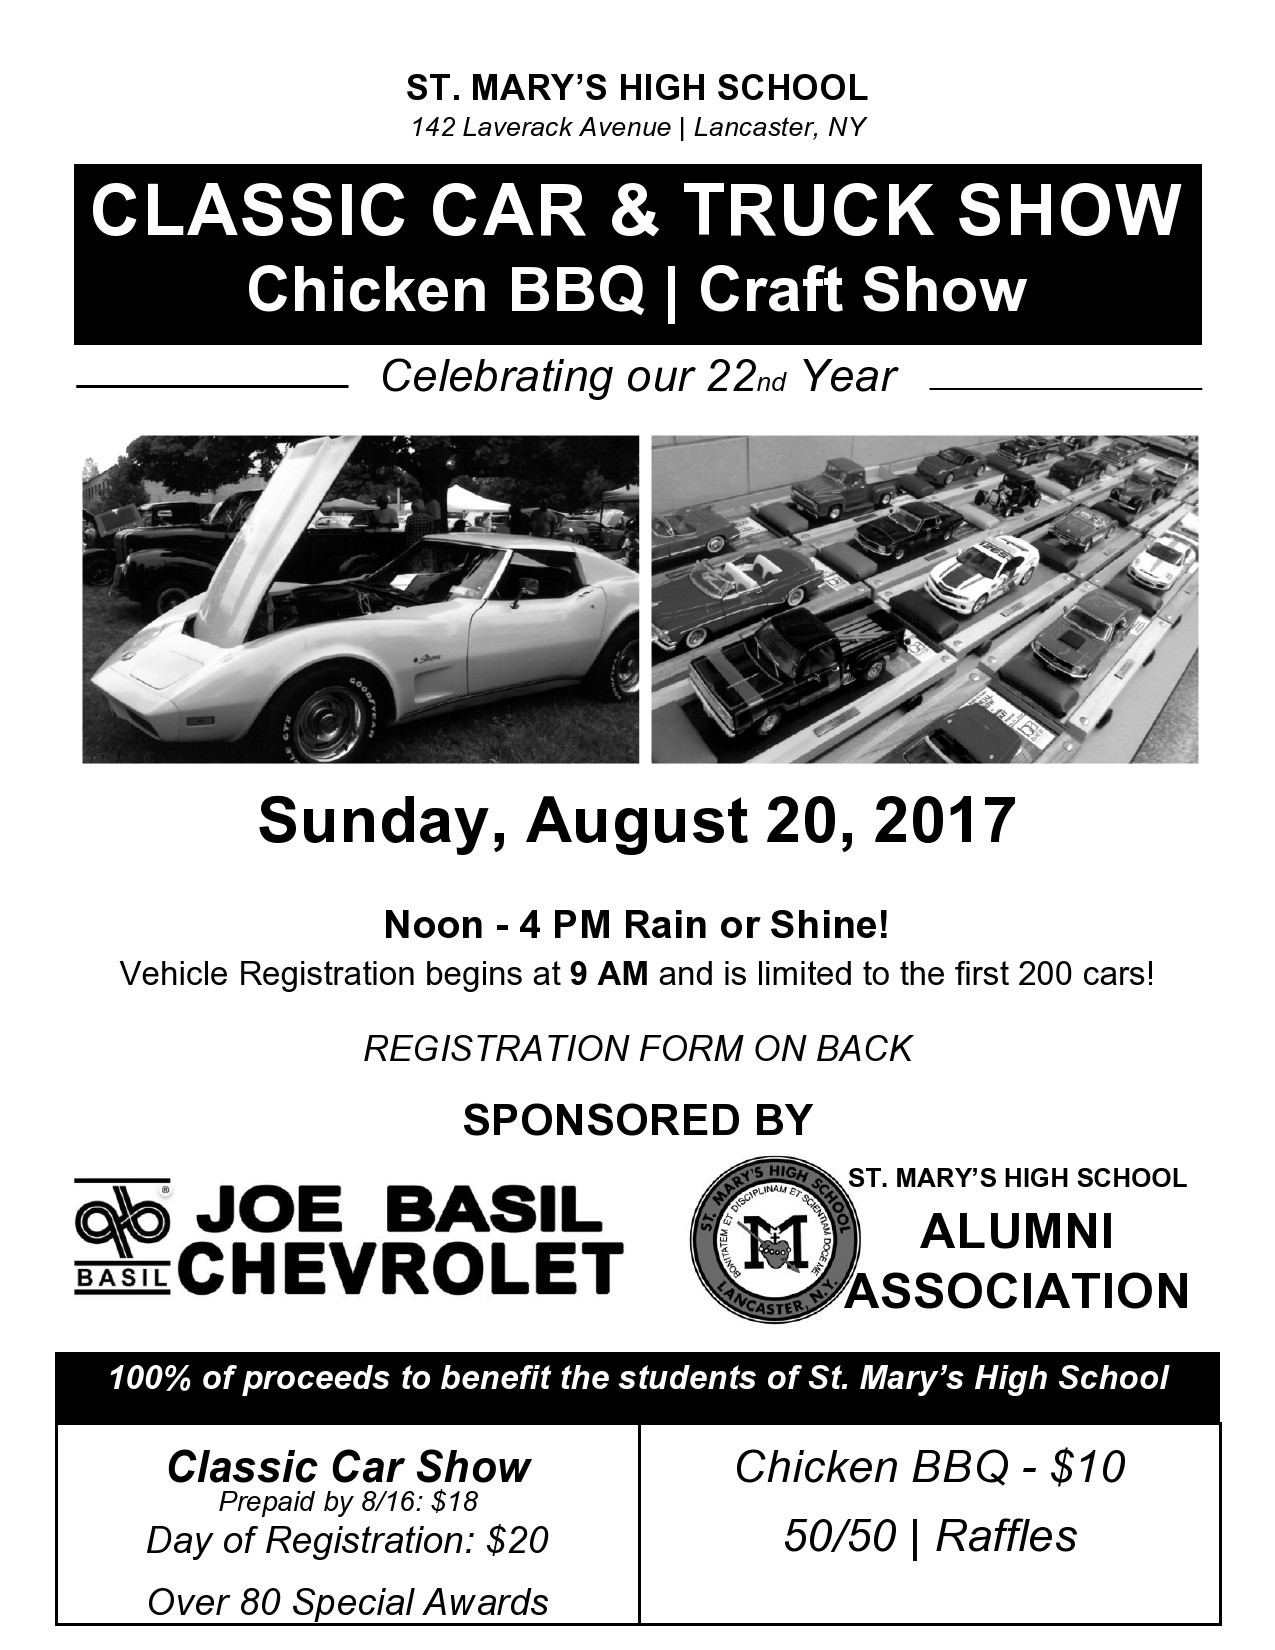 Free car show flyer 21